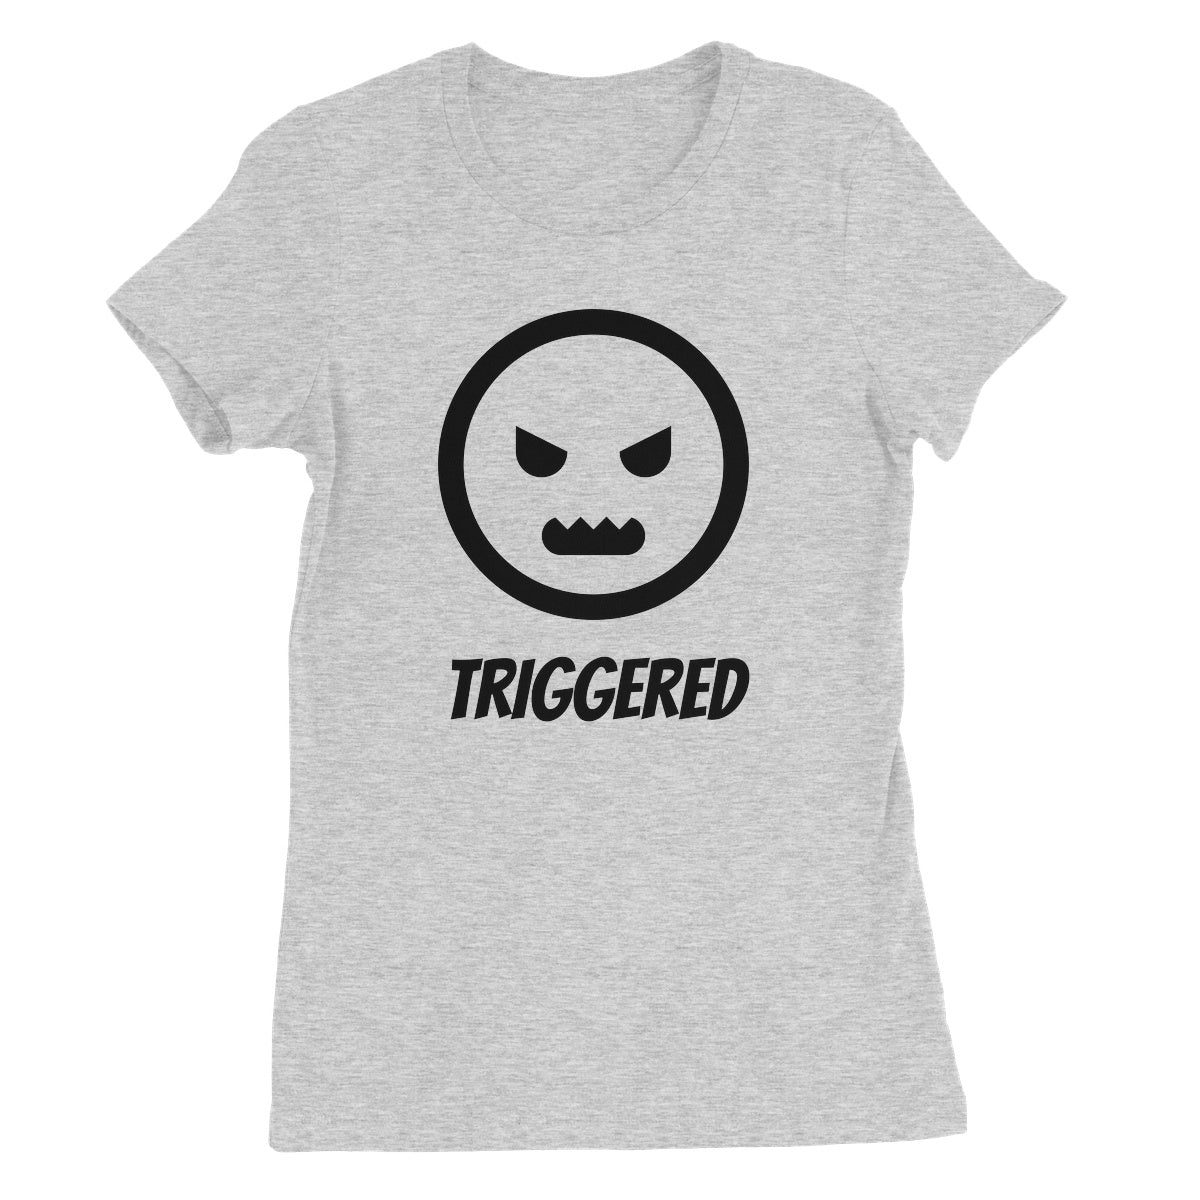 Triggered (Black) Women's Favourite T-Shirt by stray funk design